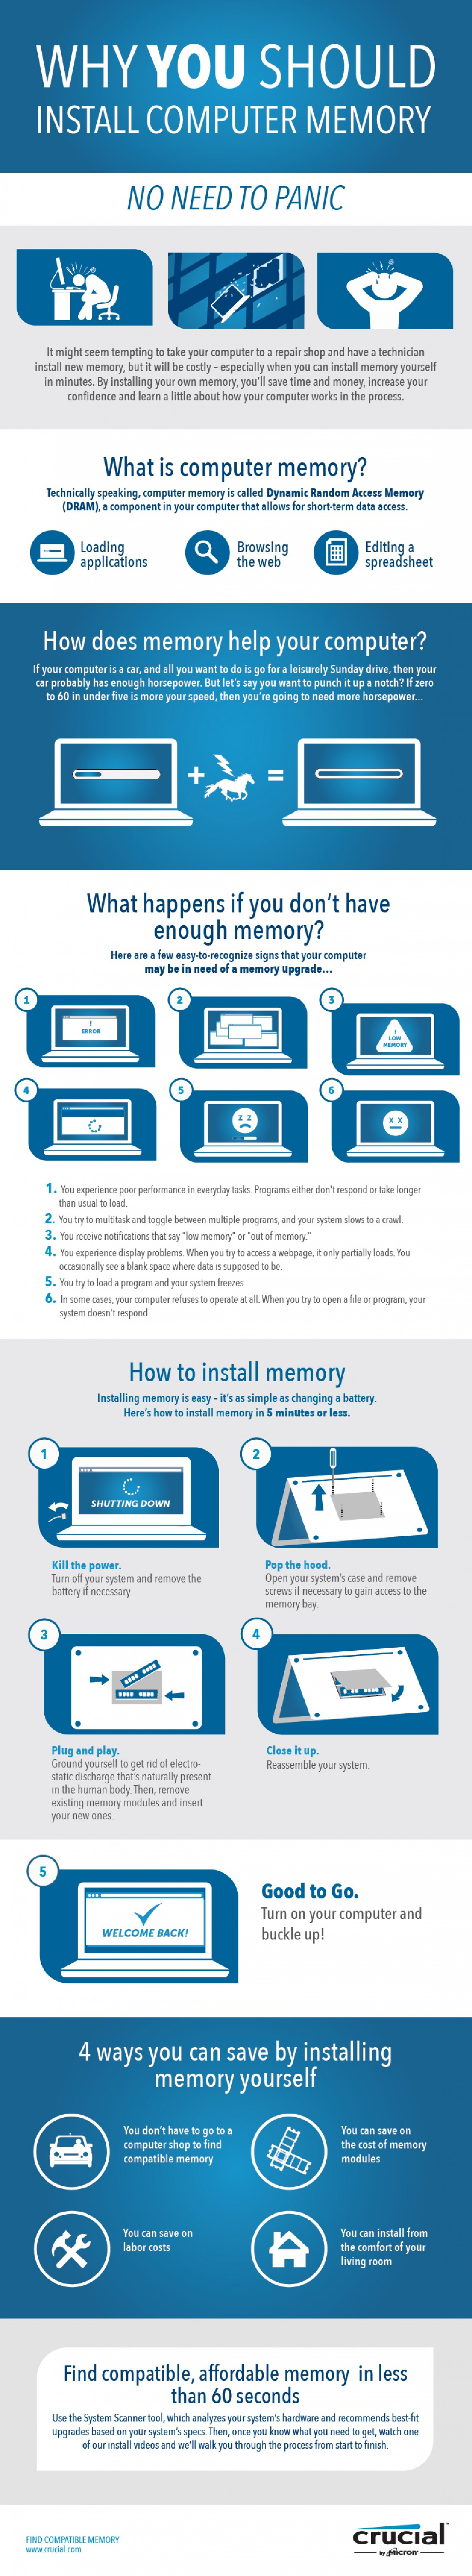 Why You Should Install Computer Memory Infographic